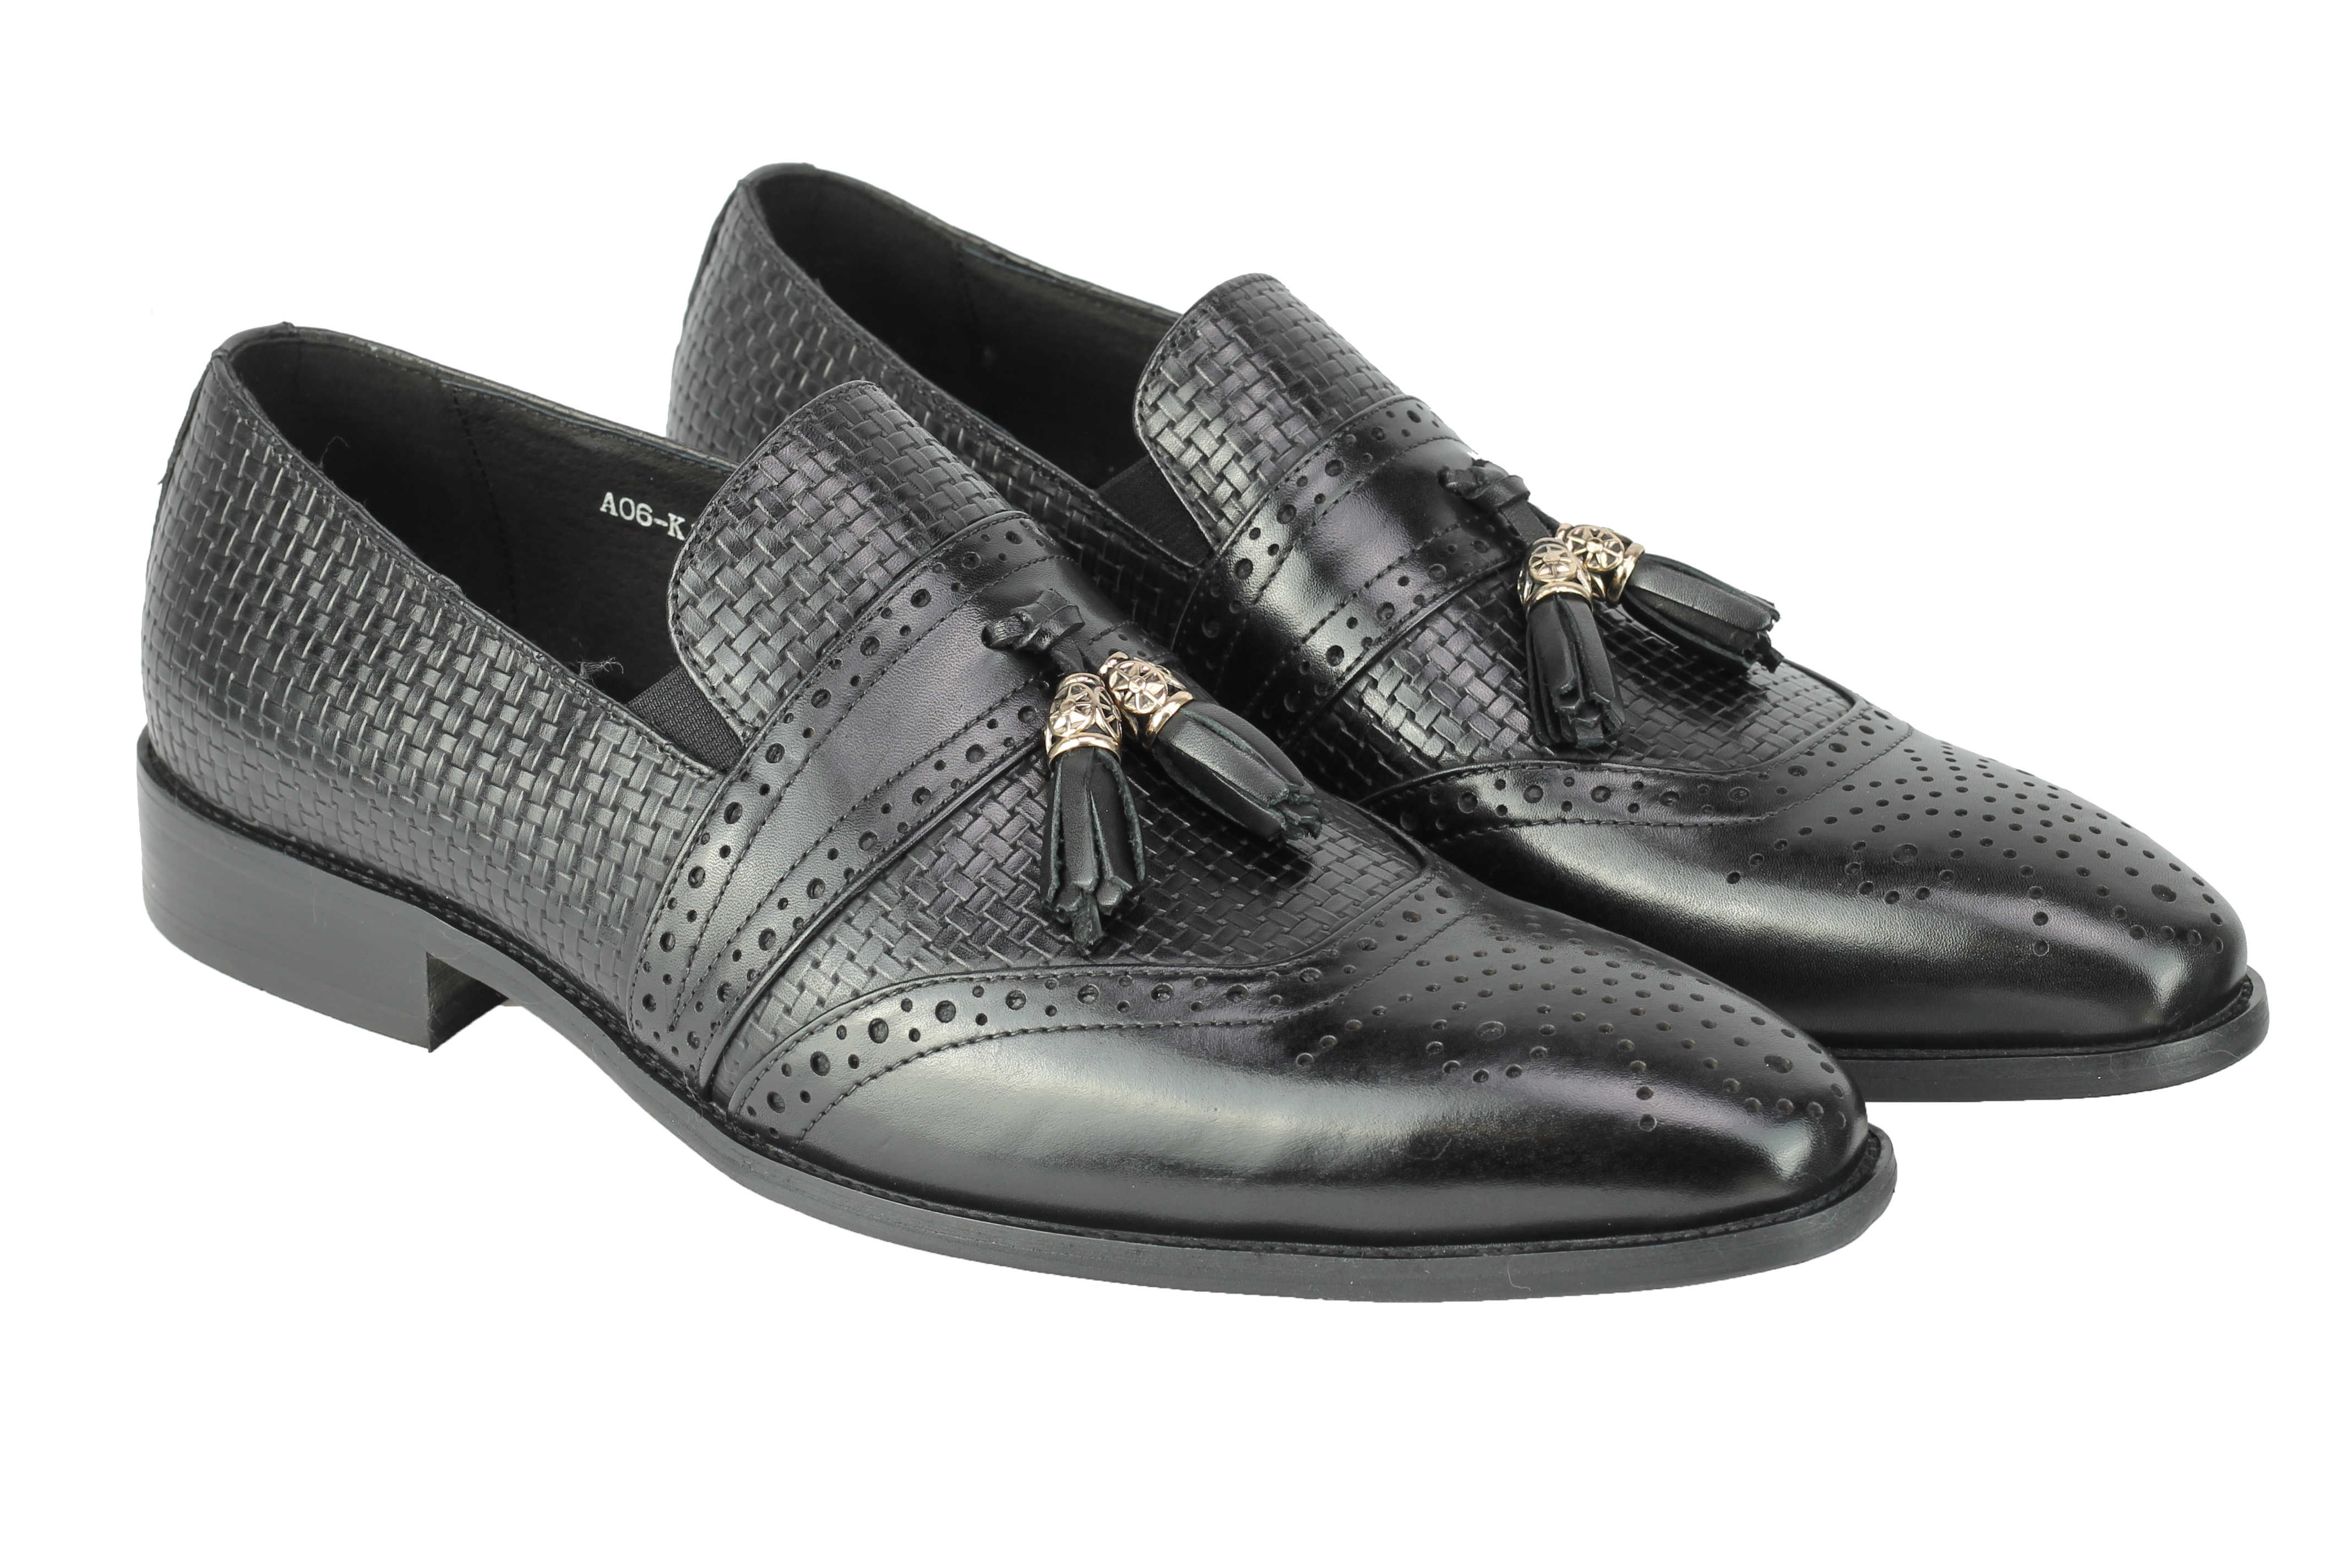 Mens-Real-Leather-Slip-on-Tassel-Loafers-High-Detailed-Smart-Dress-Party-Shoes thumbnail 3